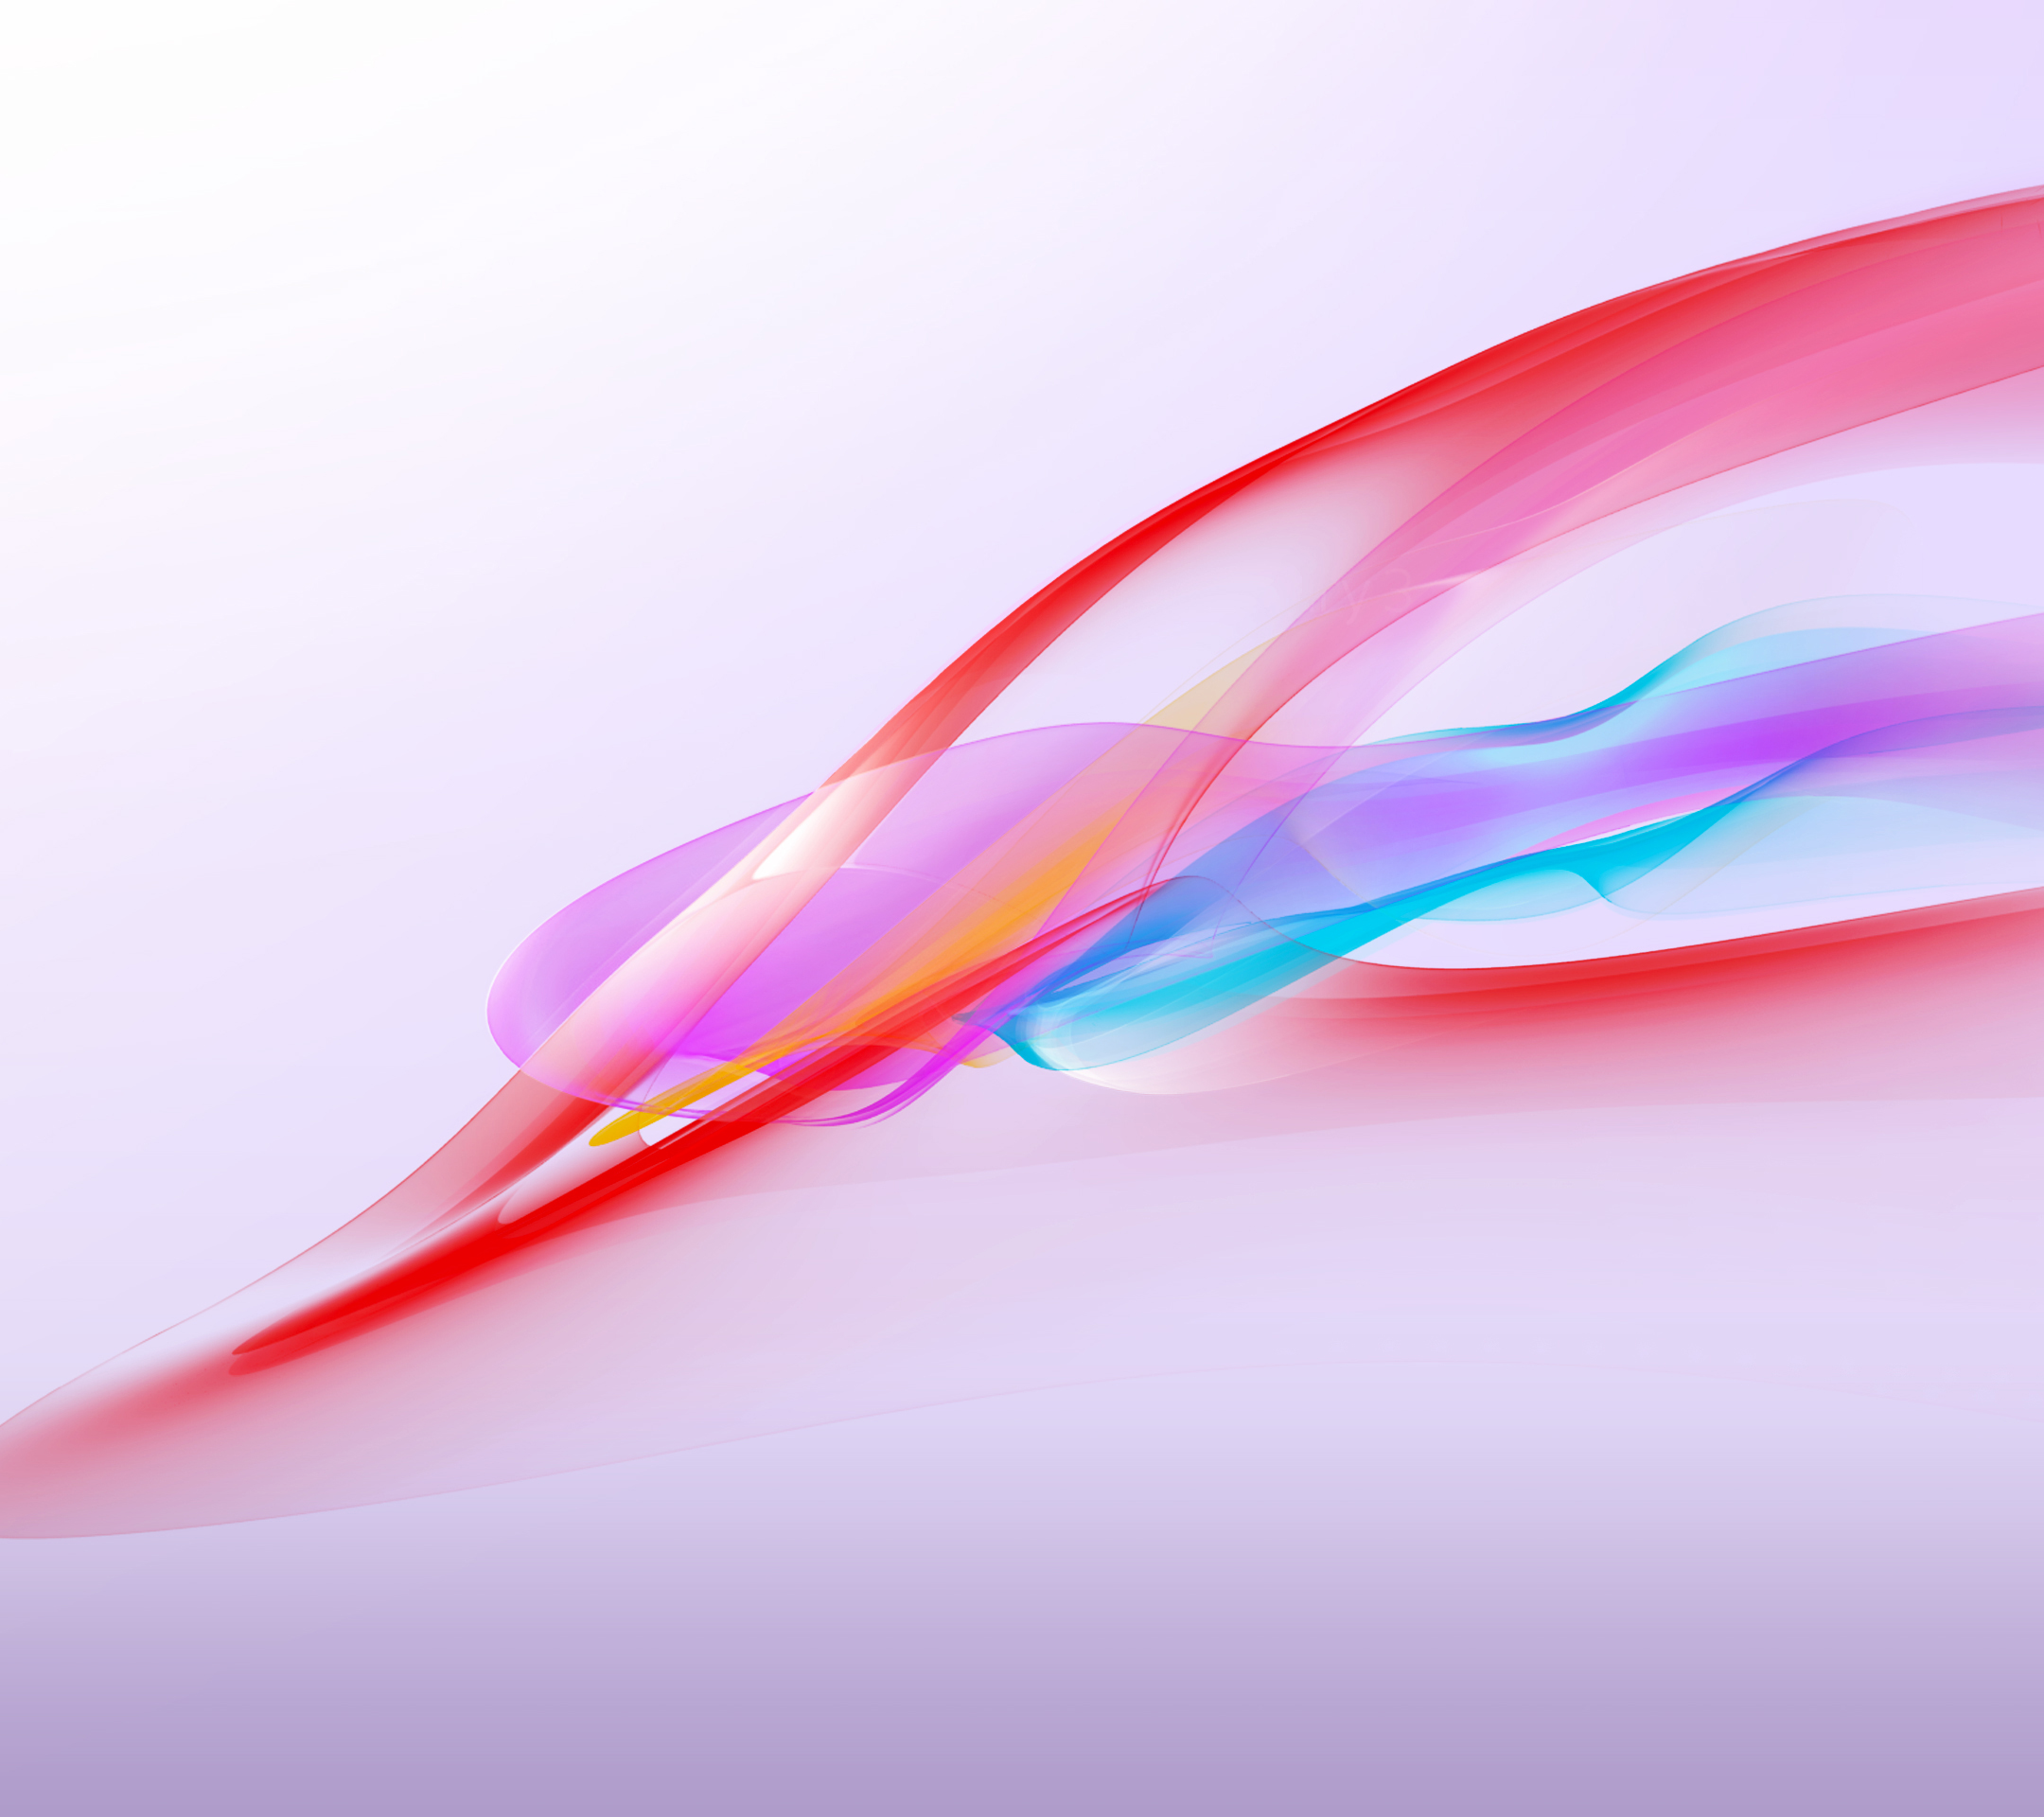 Sony Xperia Z1 wallpapers now available to download ...Xperia Z1 Stock Wallpaper